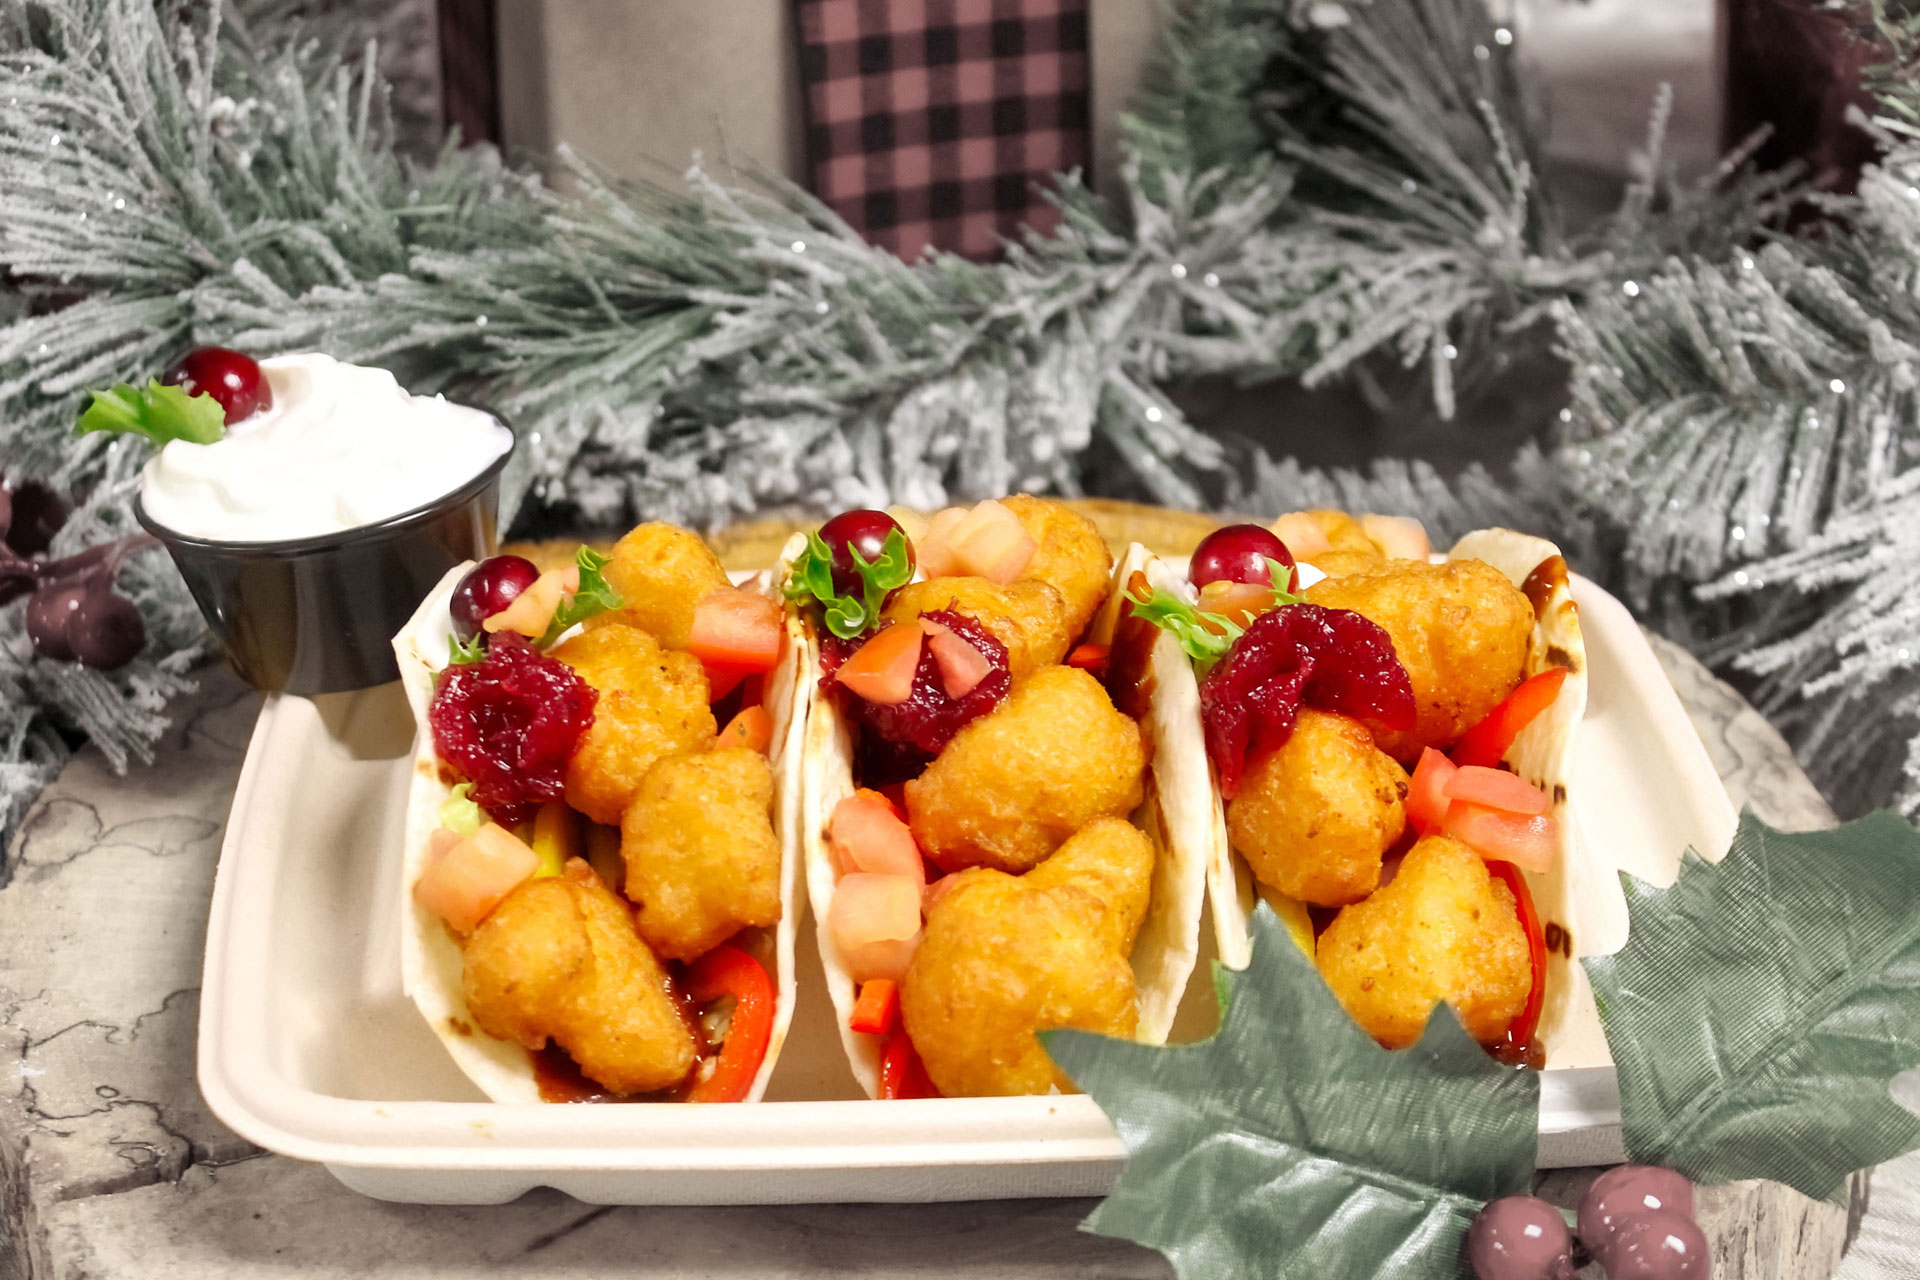 Deep-Fried Cauliflower Tacos are available during WinterFest!